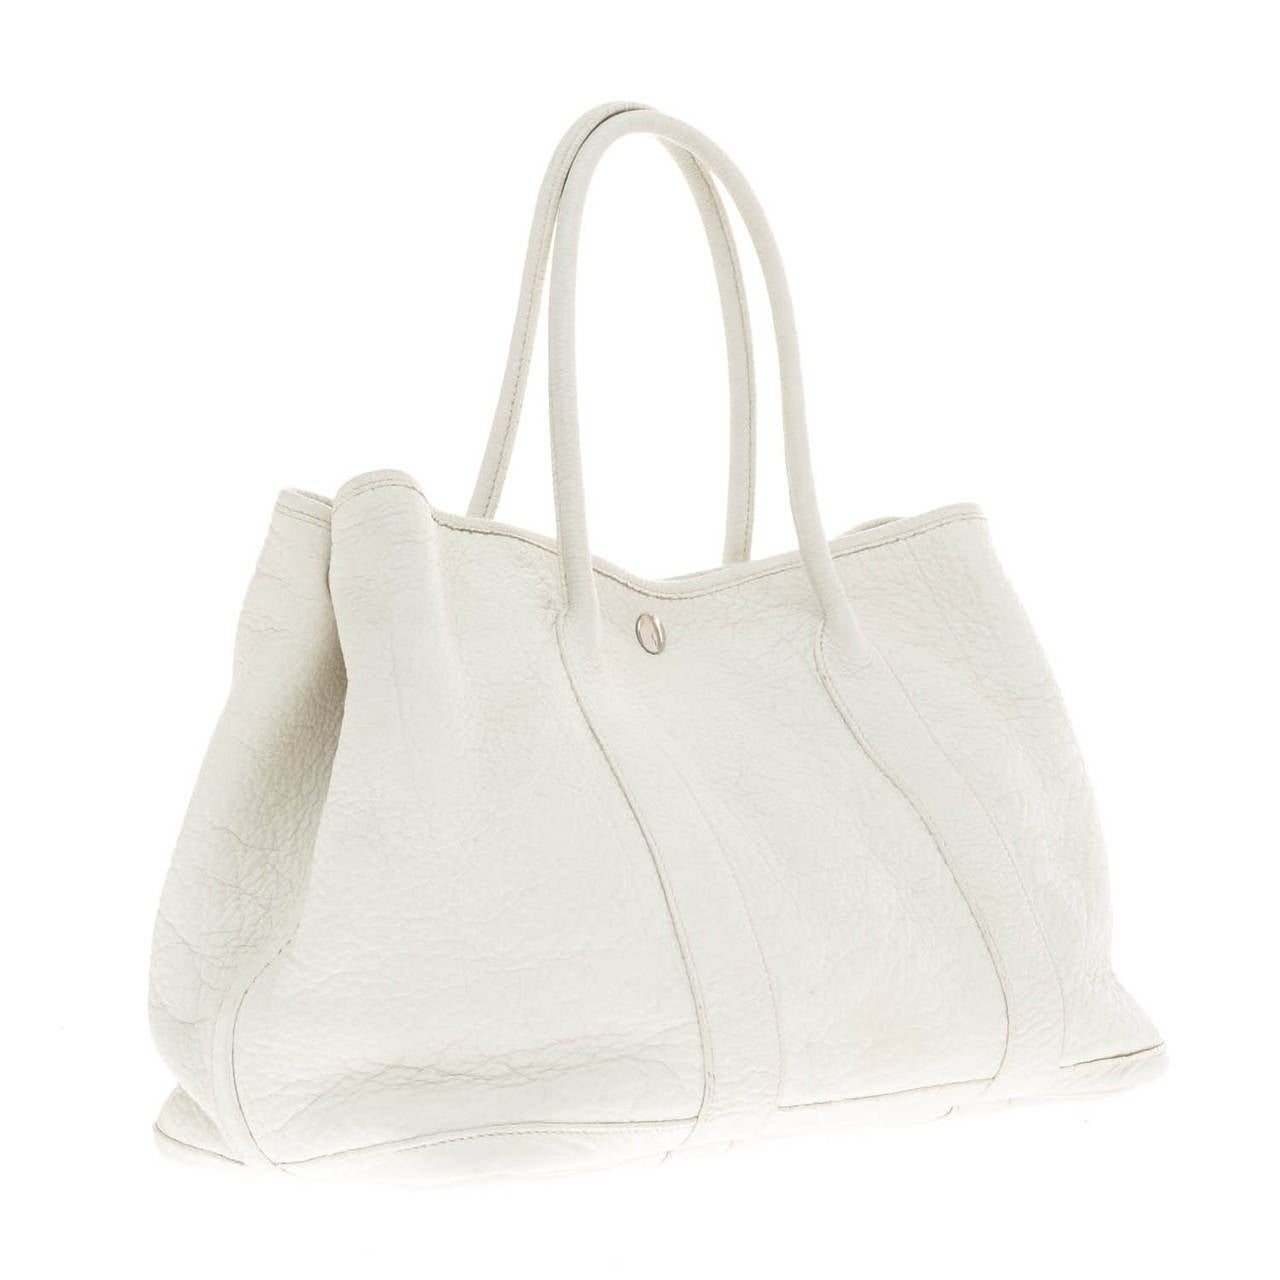 where can i sell my hermes bag - Hermes Garden Party Tote Leather 14 at 1stdibs